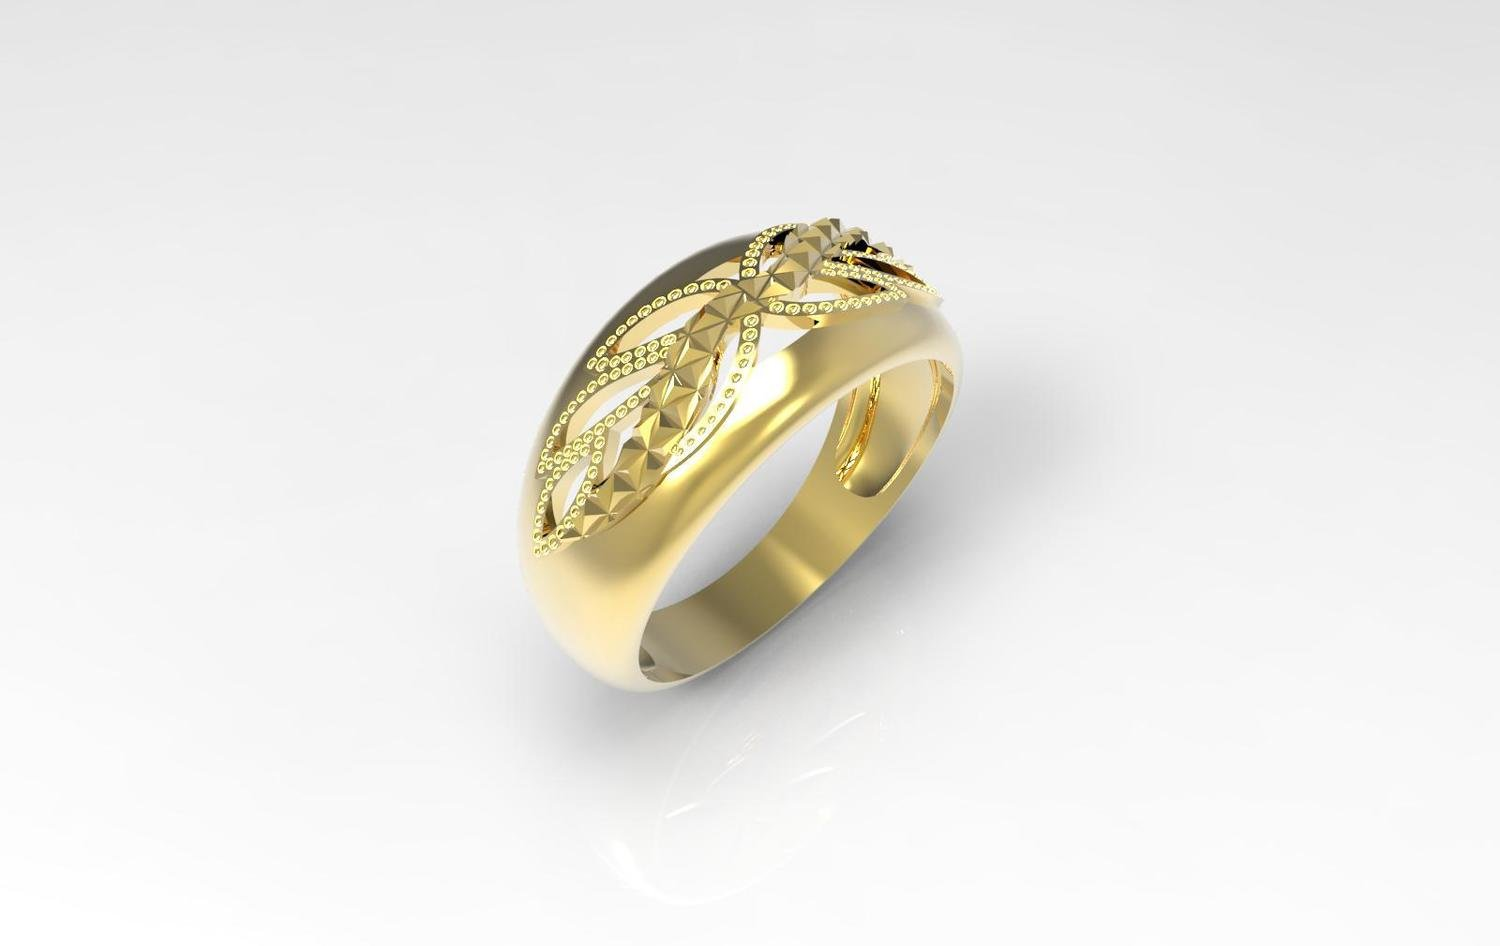 3D CAD Model of Wedding Ring